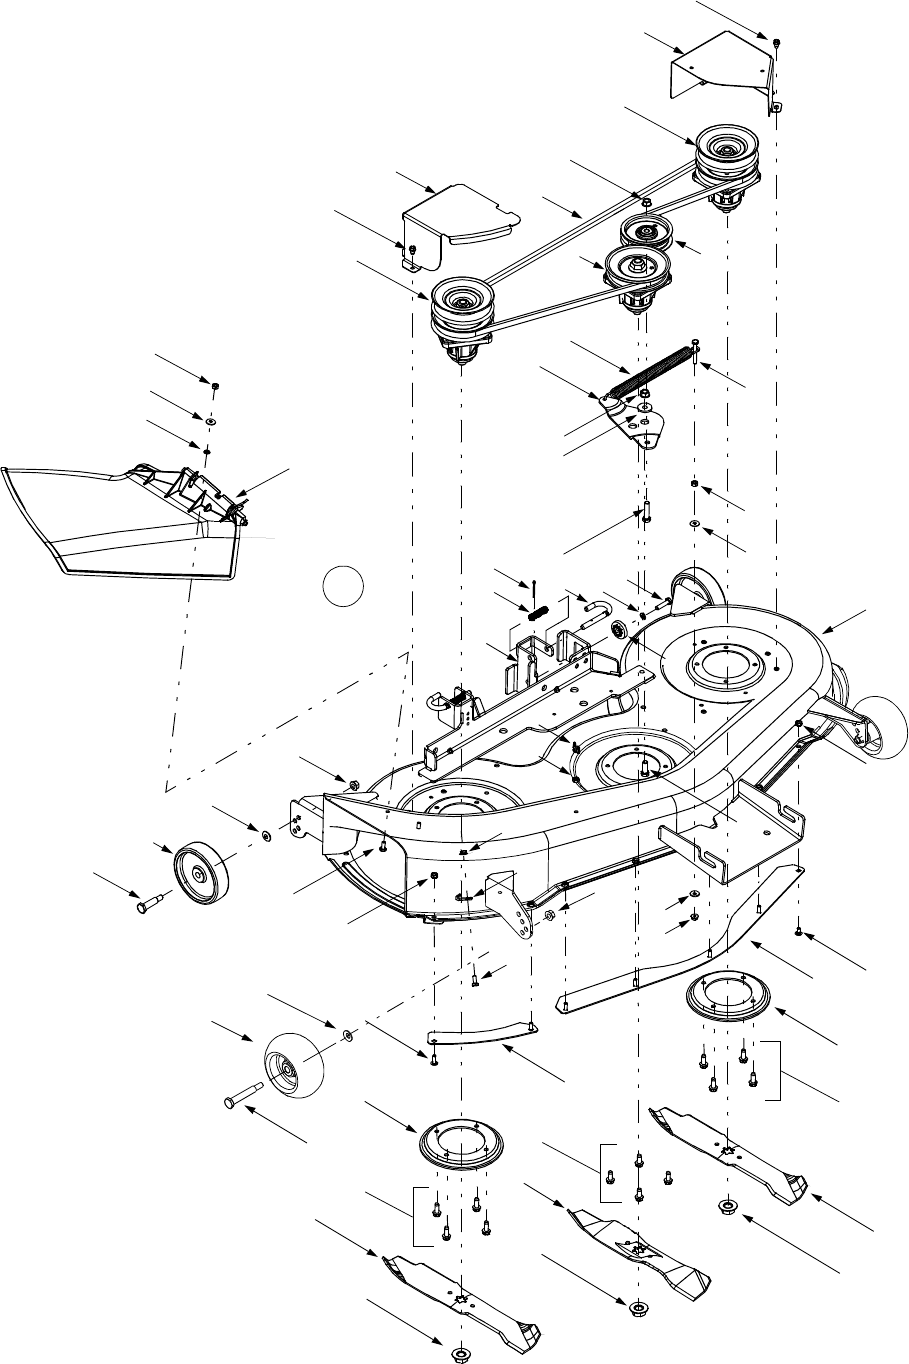 Page 40 of Troy-Bilt Lawn Mower V809h User Guide